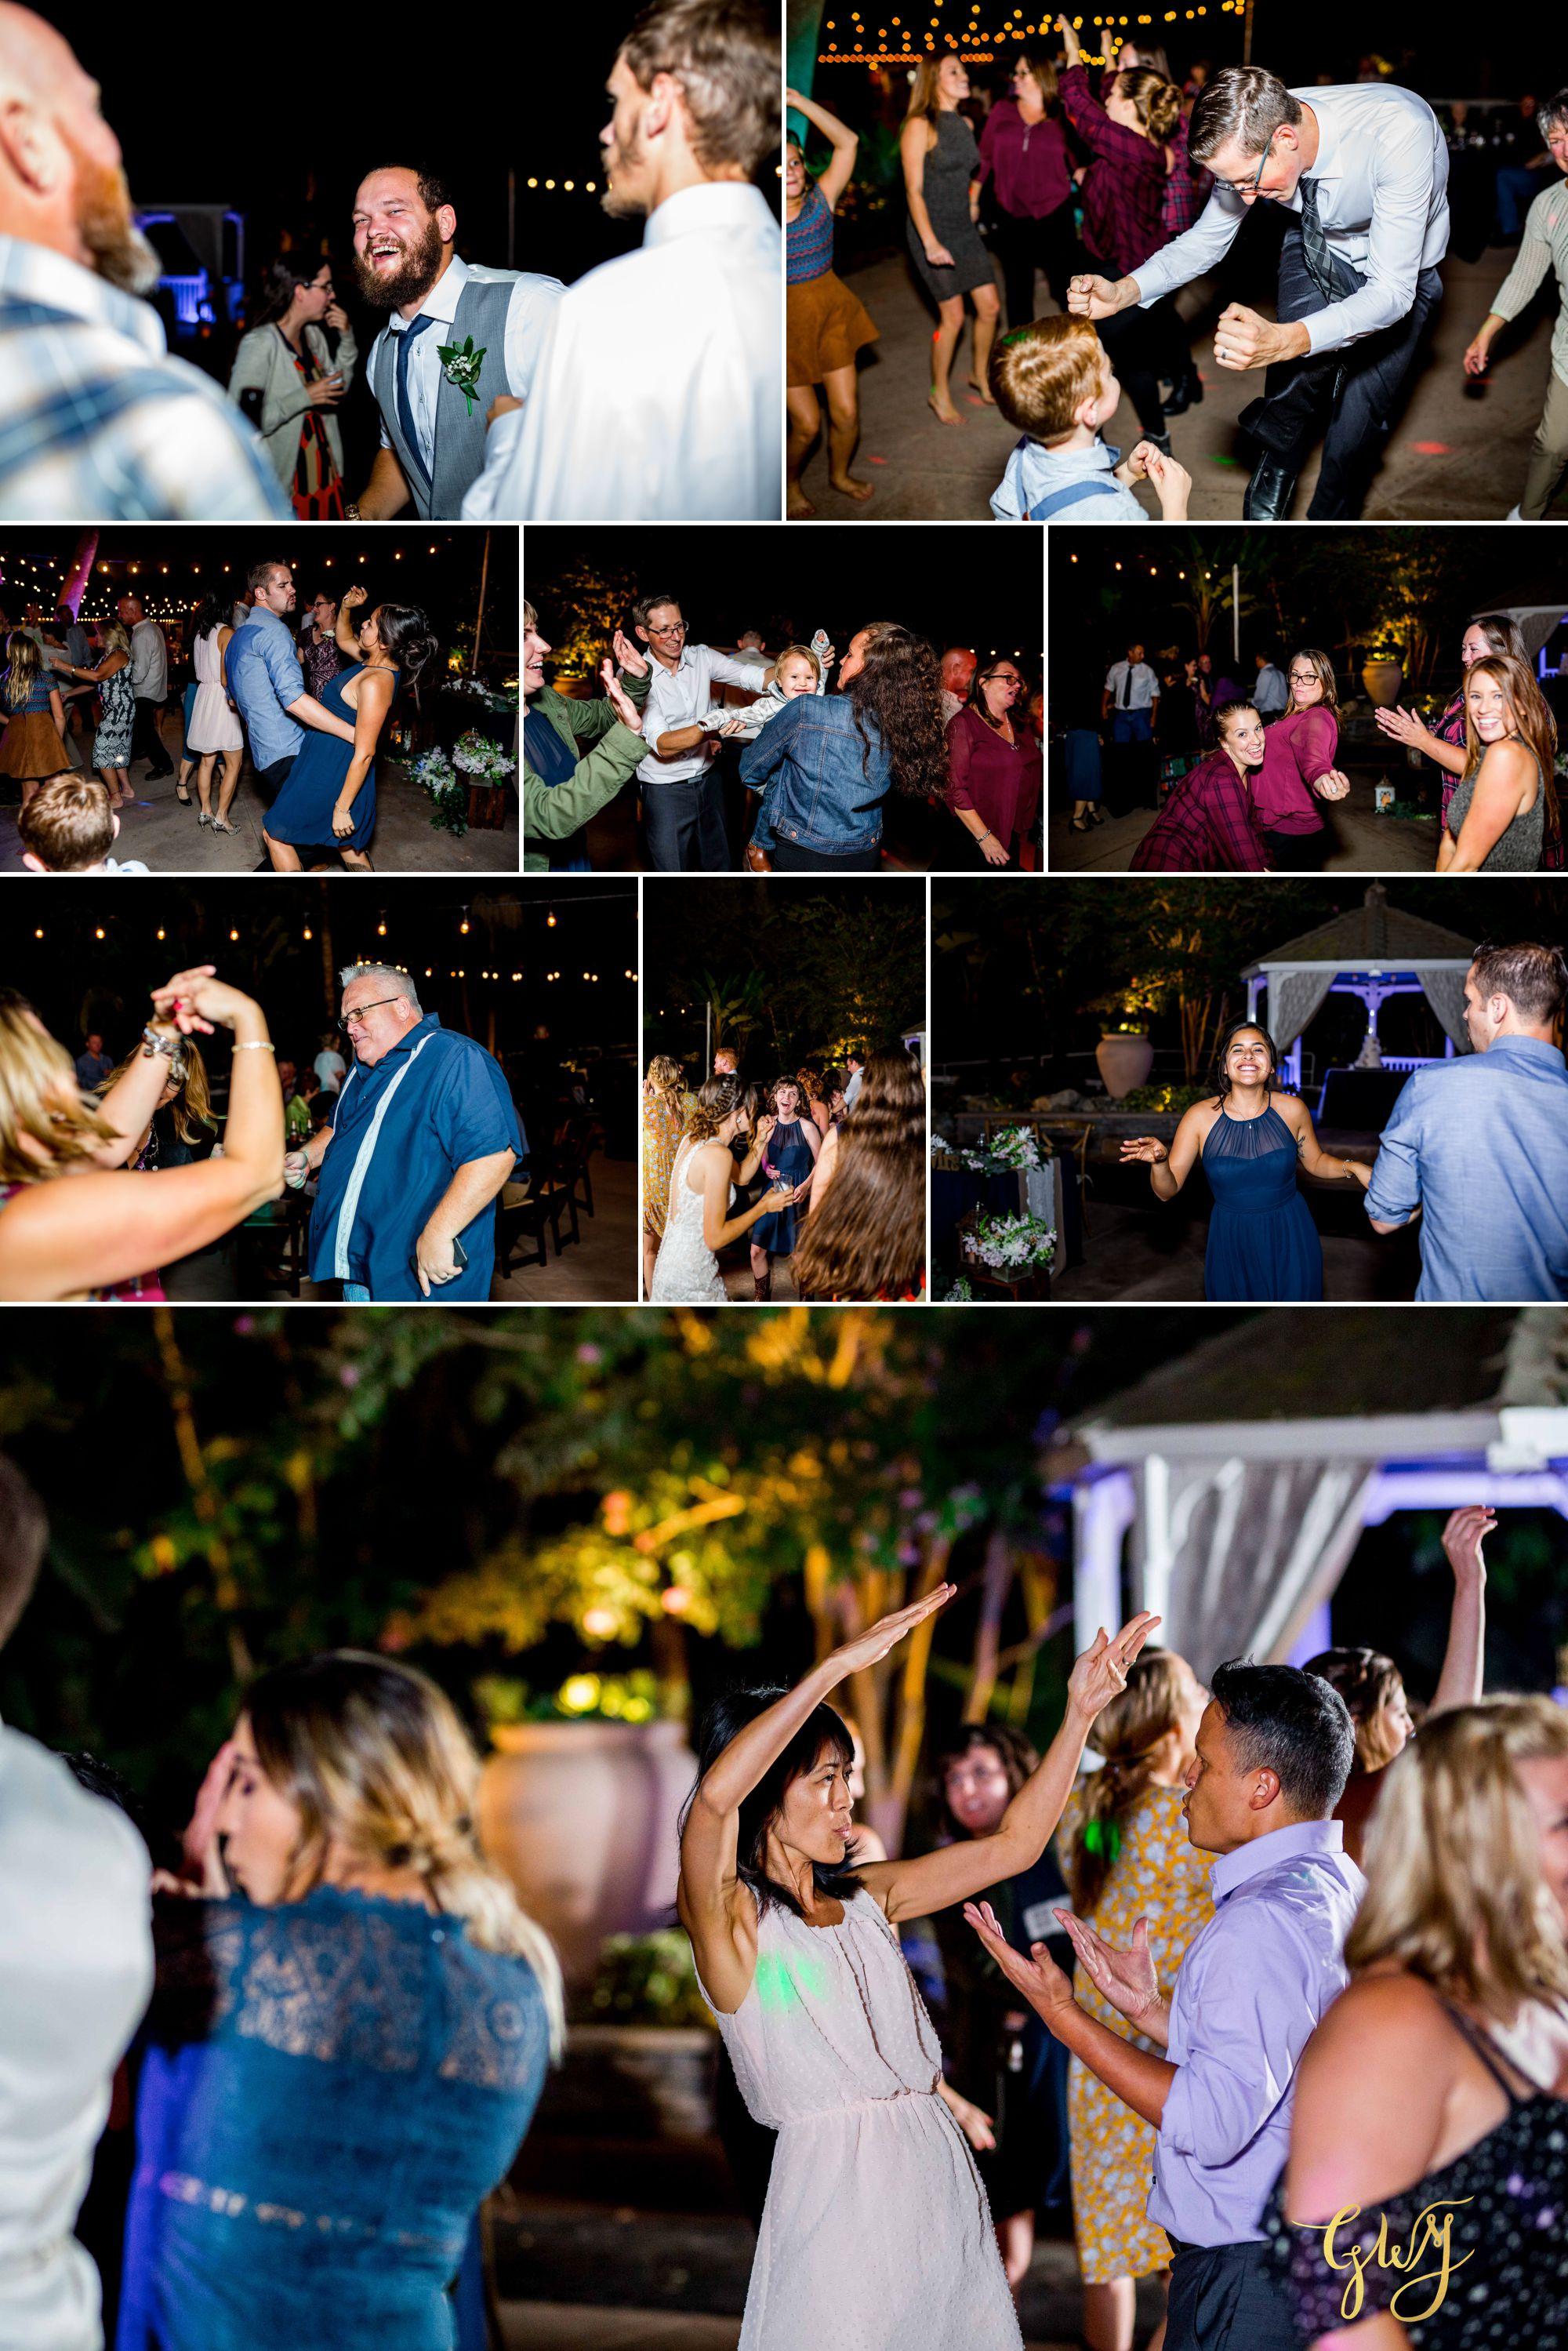 Hannah + Troy's Rustic Red Horse Barn Huntington Beach Wedding 2 14.jpg